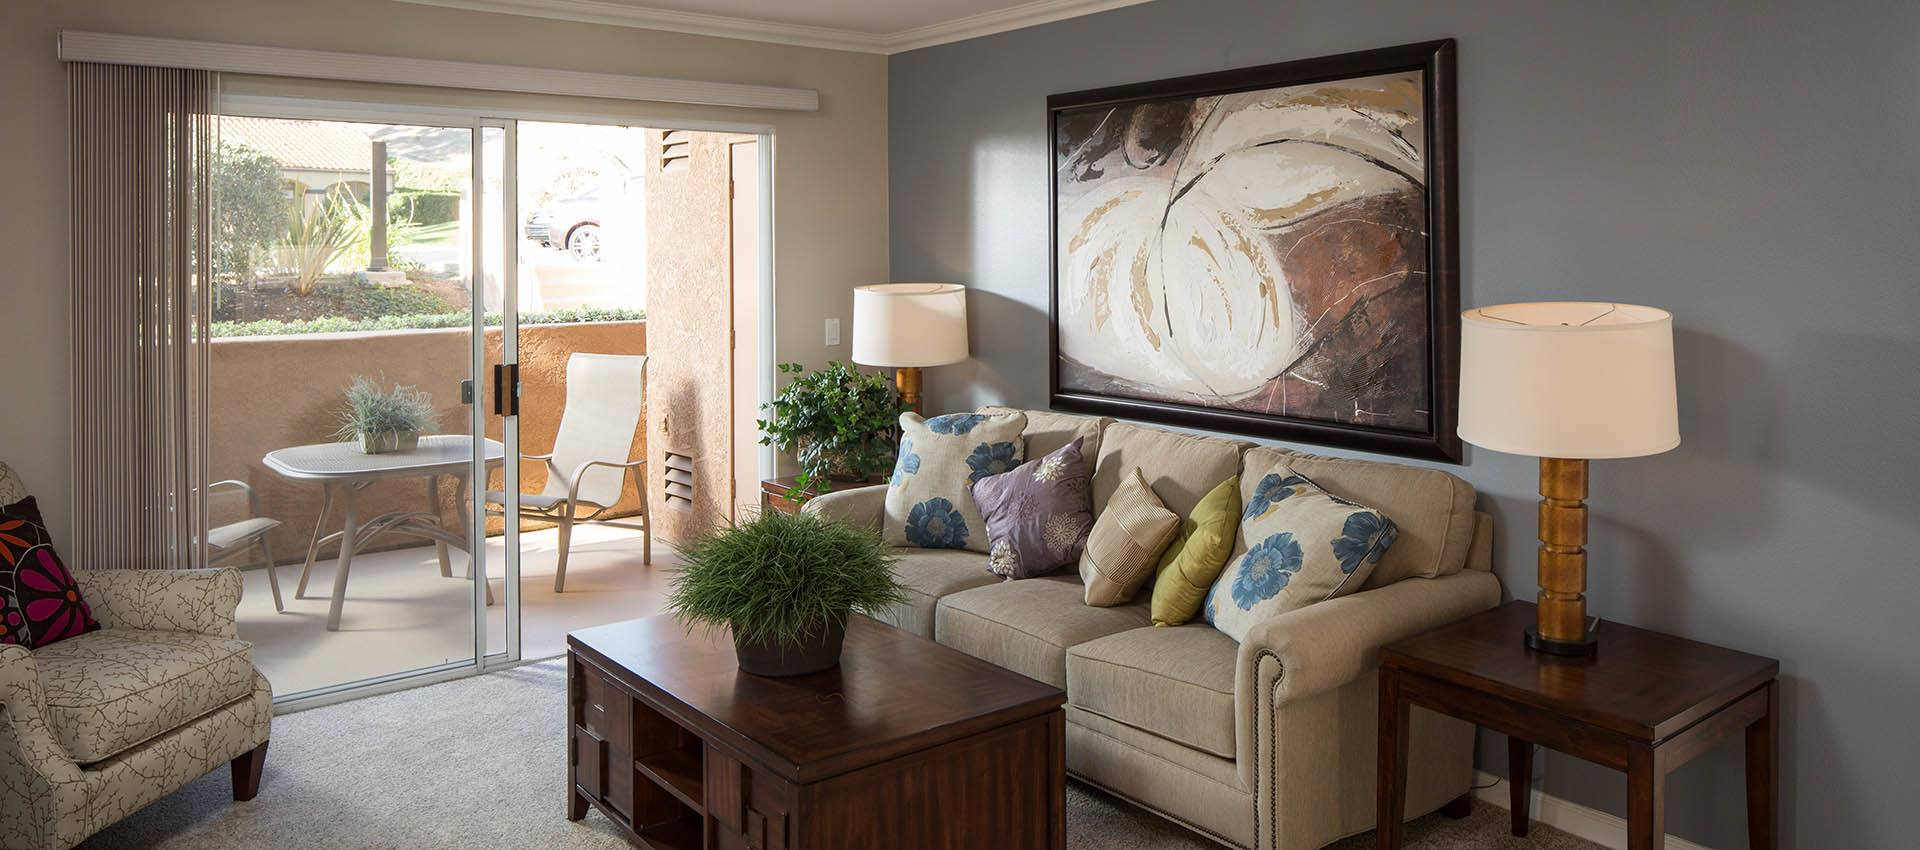 Spacious living room at Shadow Ridge Apartment Homes in Simi Valley, CA